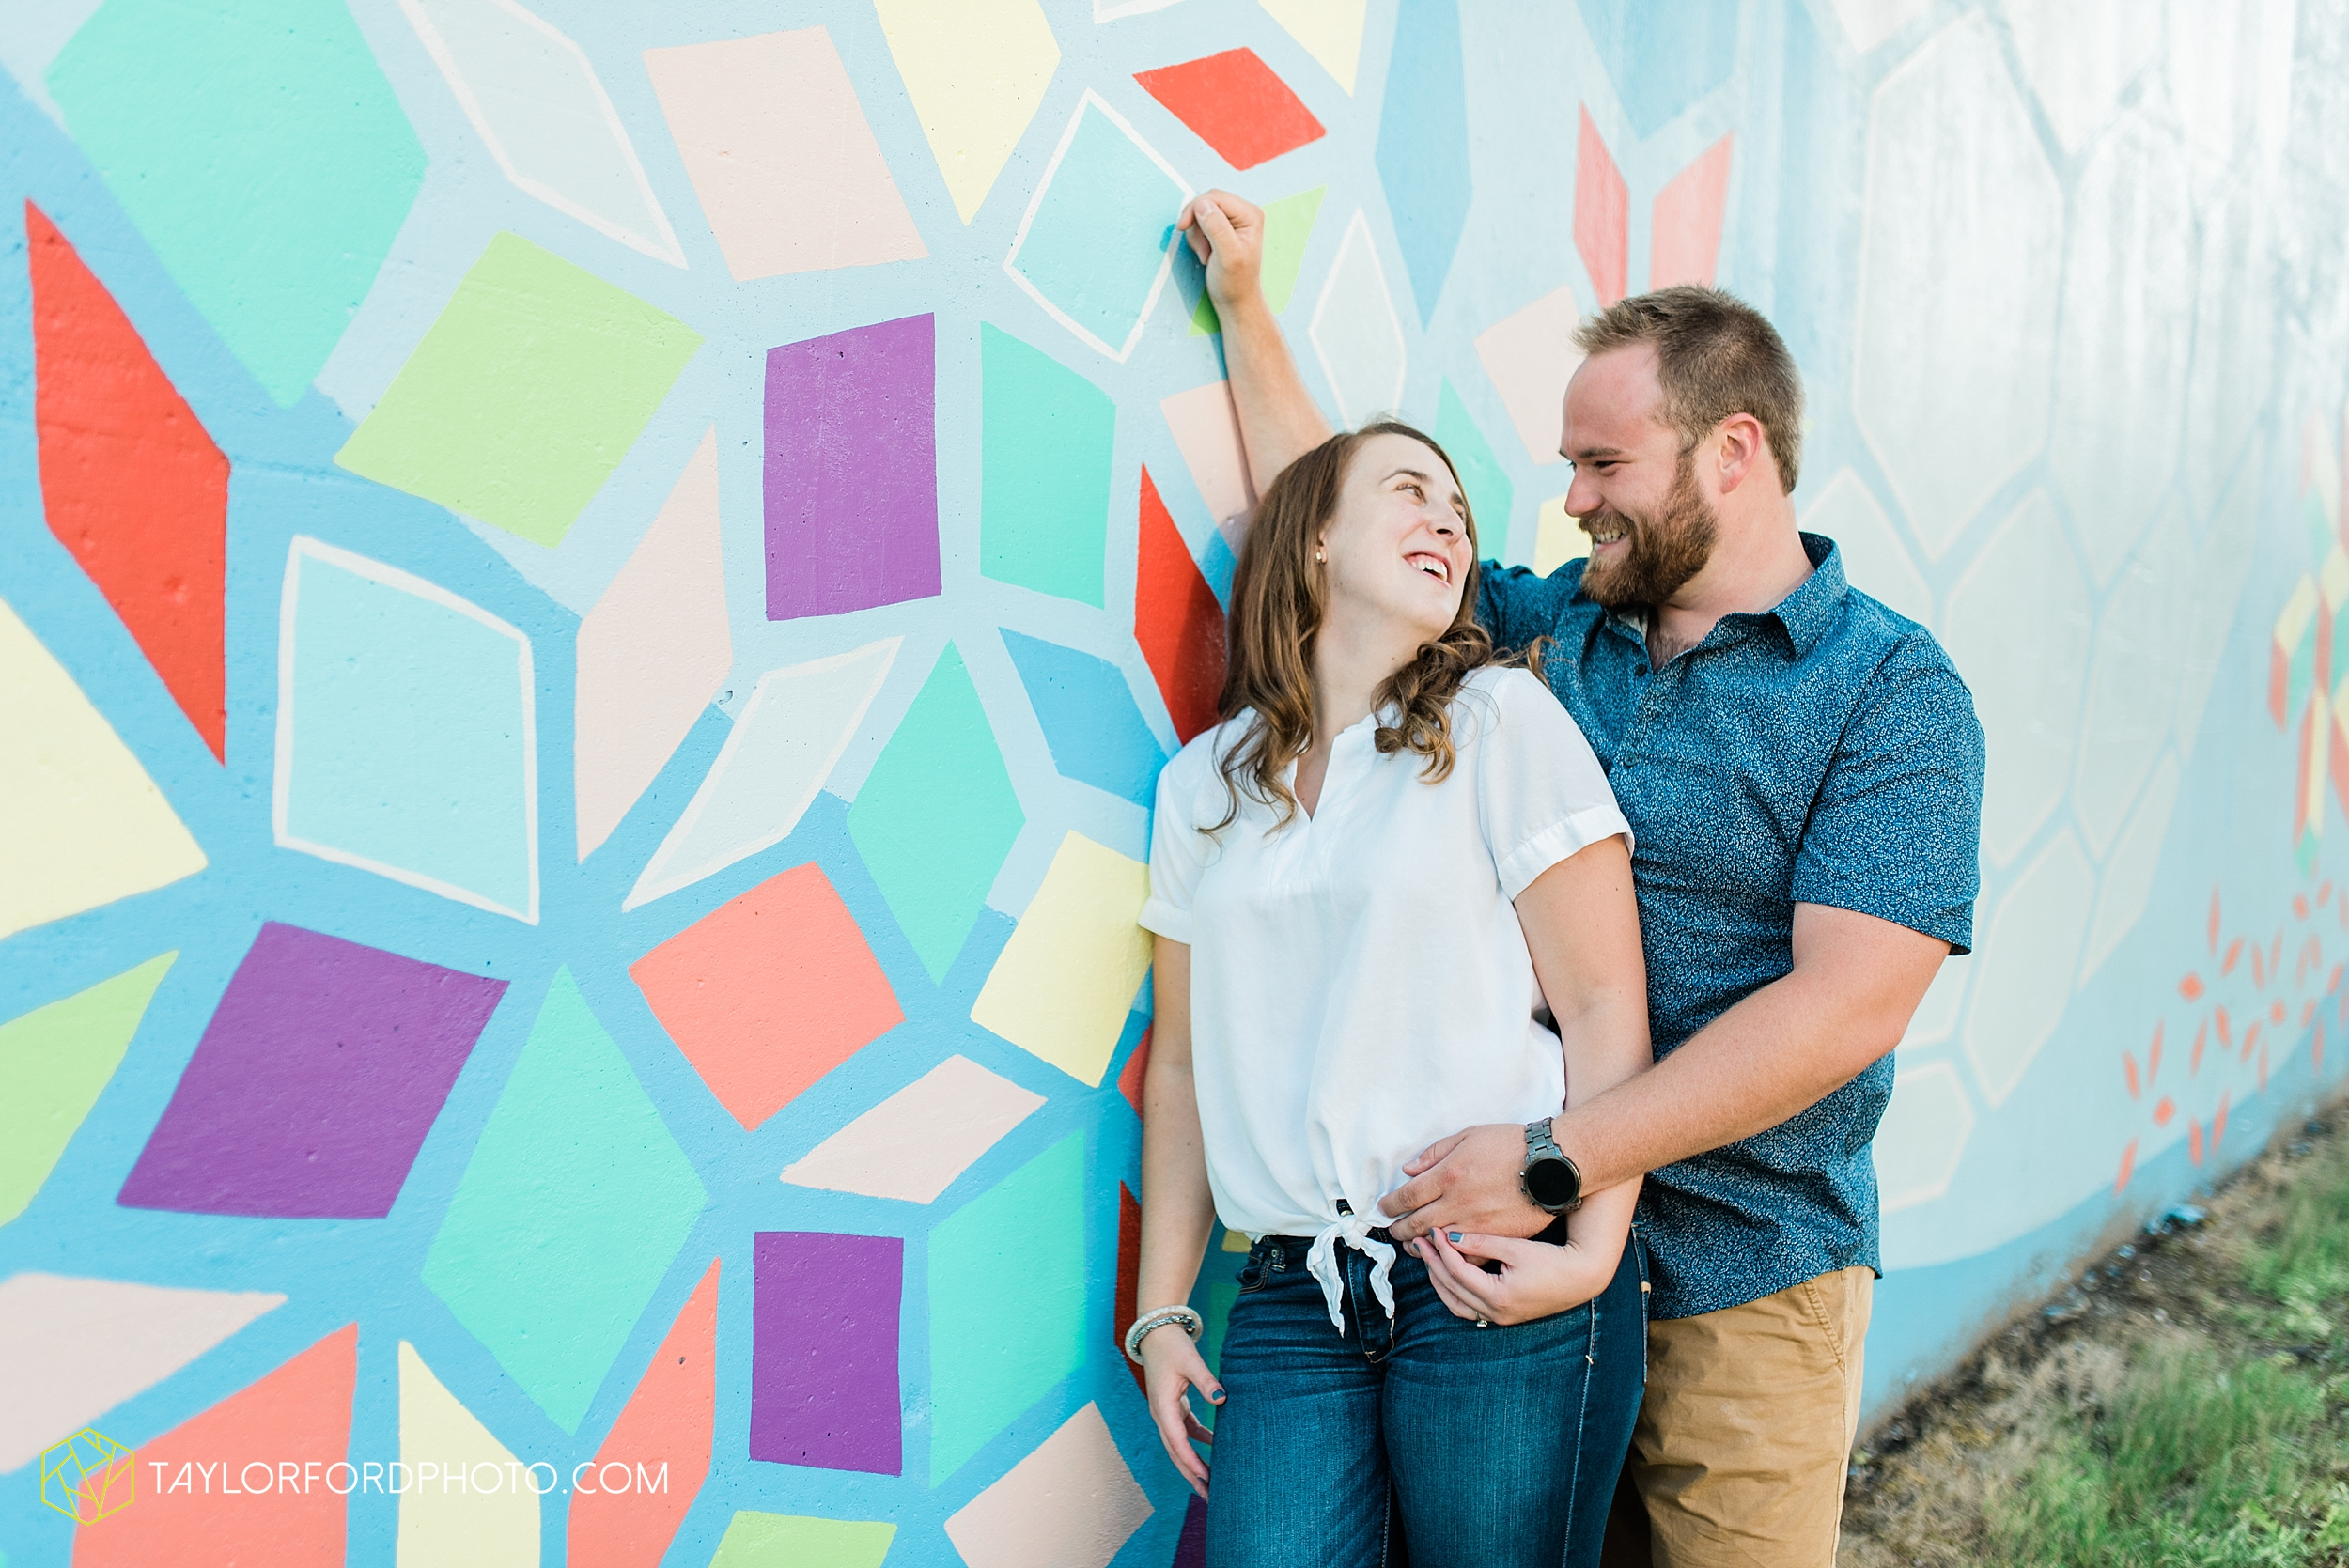 chelsey-jackson-young-downtown-fort-wayne-indiana-the-halls-deck-engagement-wedding-photographer-Taylor-Ford-Photography_8210.jpg